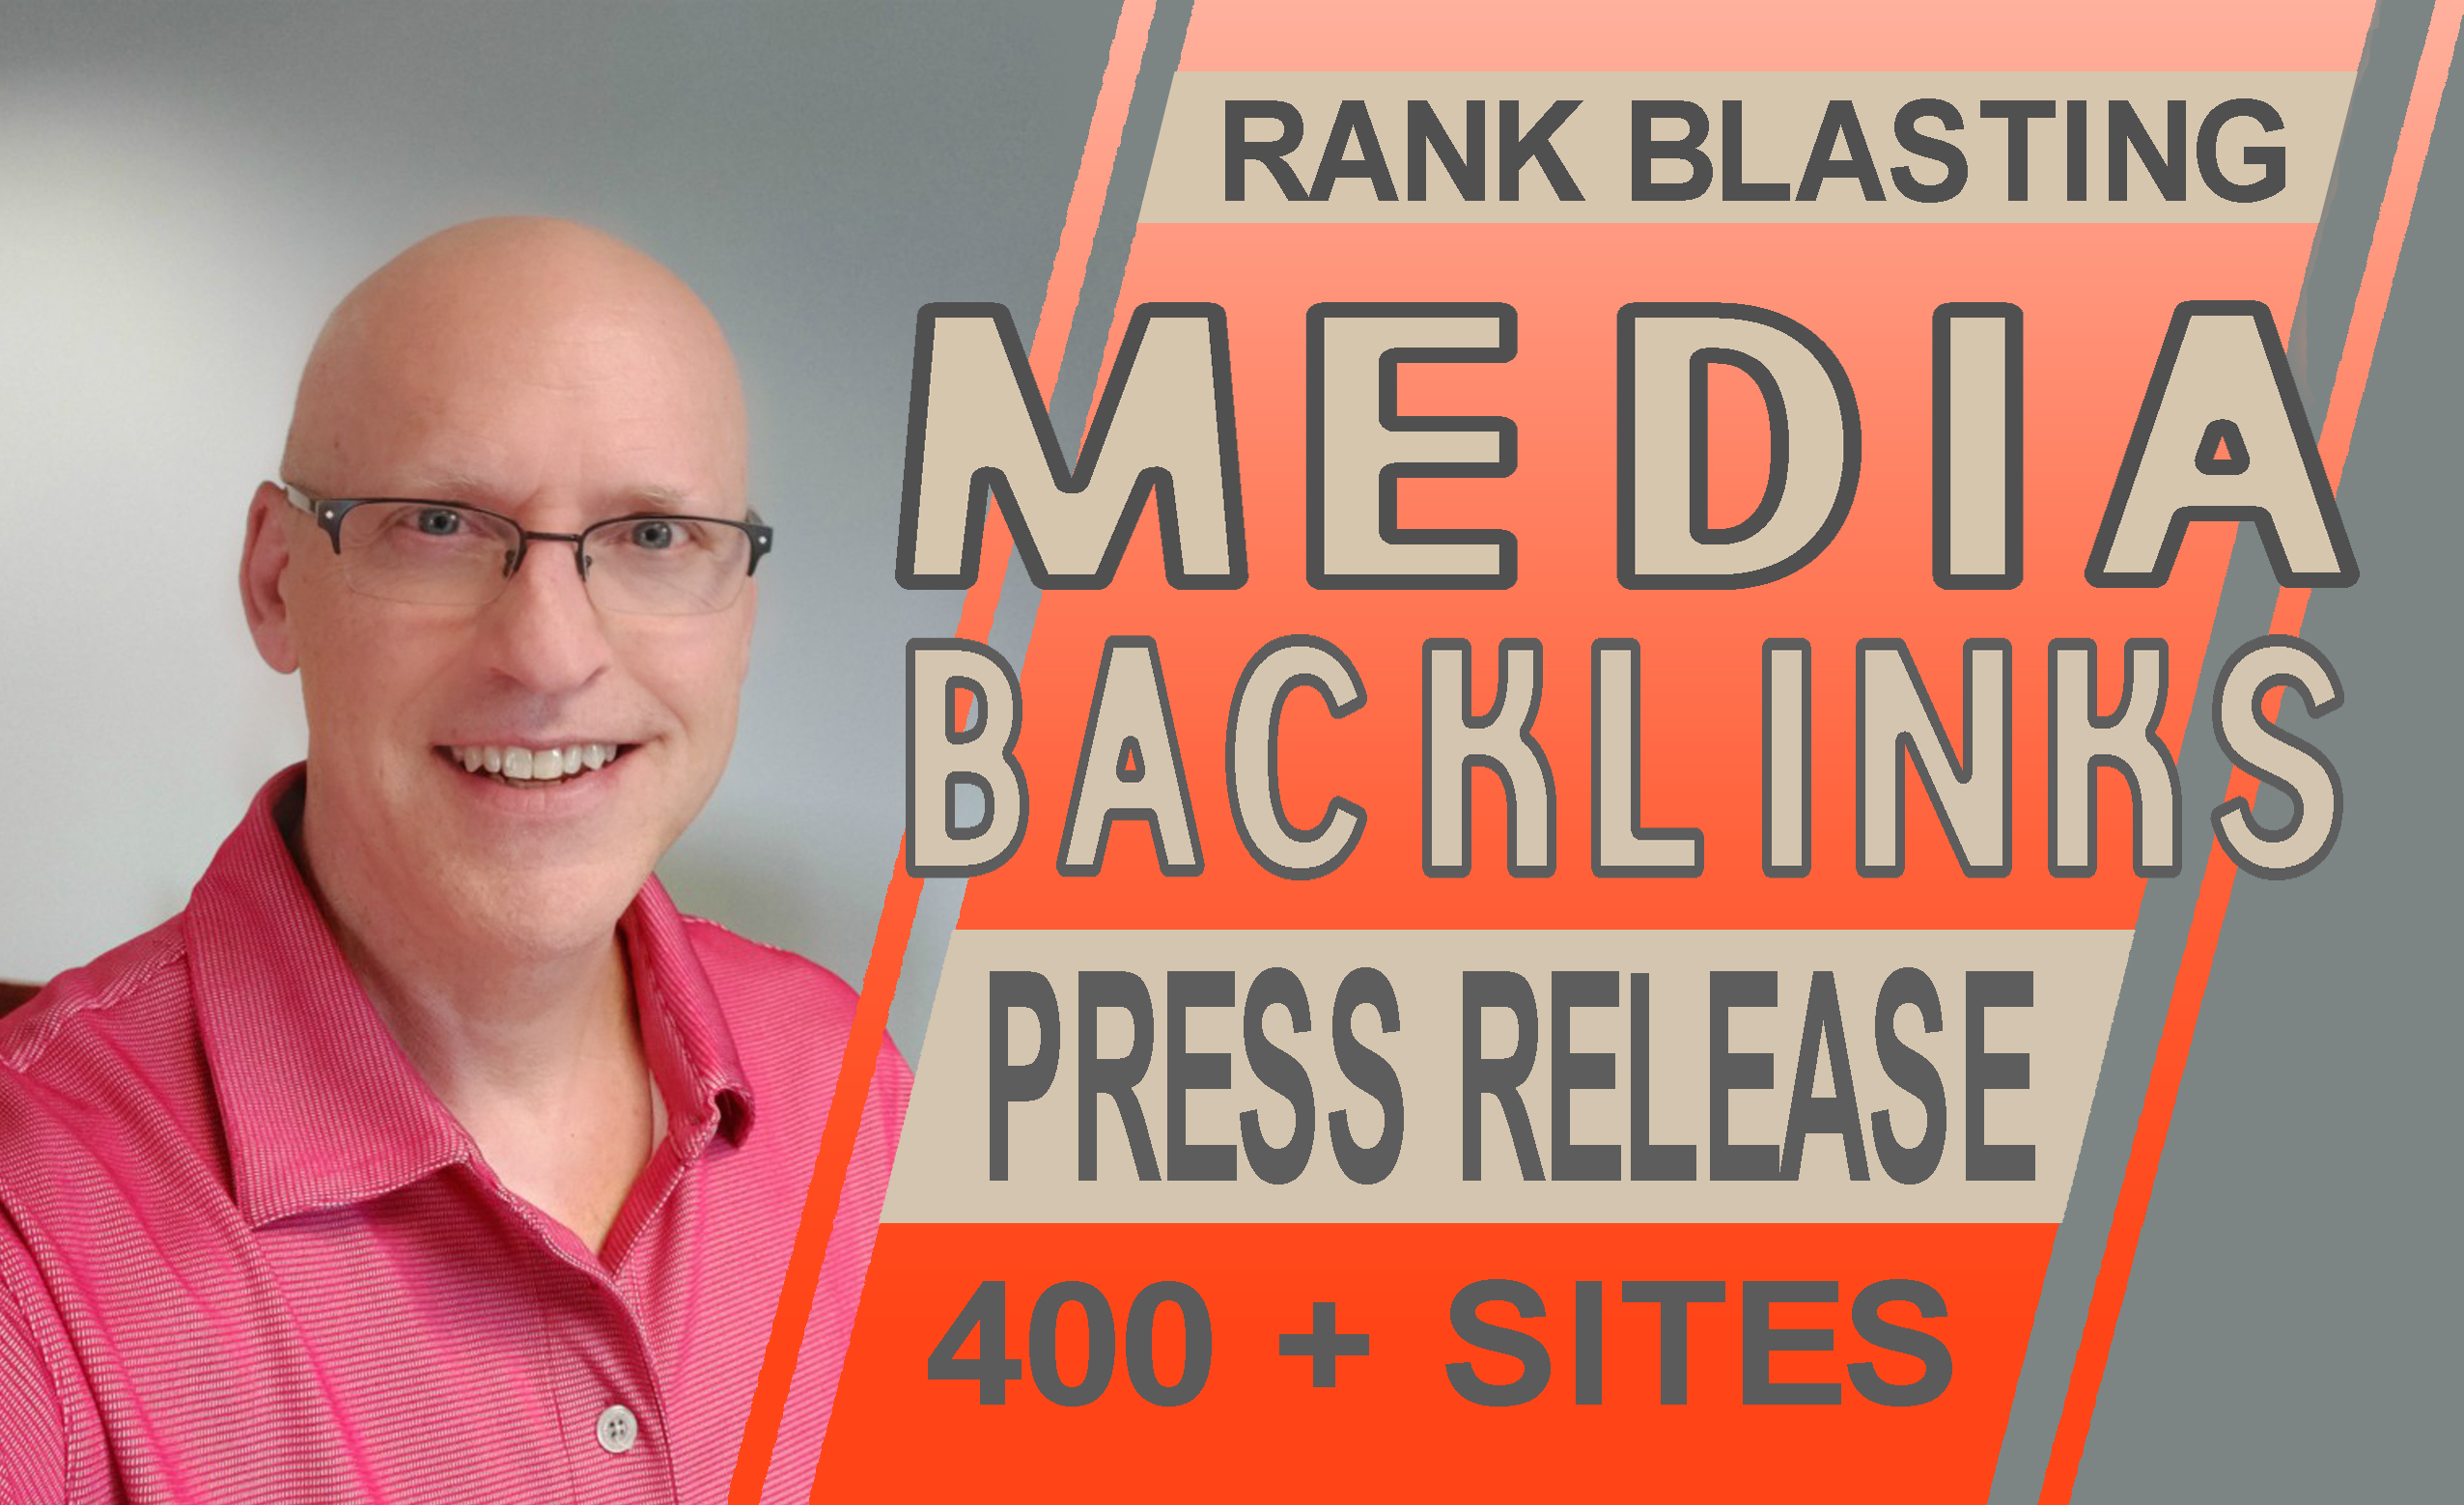 Get Agency Insiders Access 400+ Premium News Site Links To Give You Rapid Page 1 Rankings